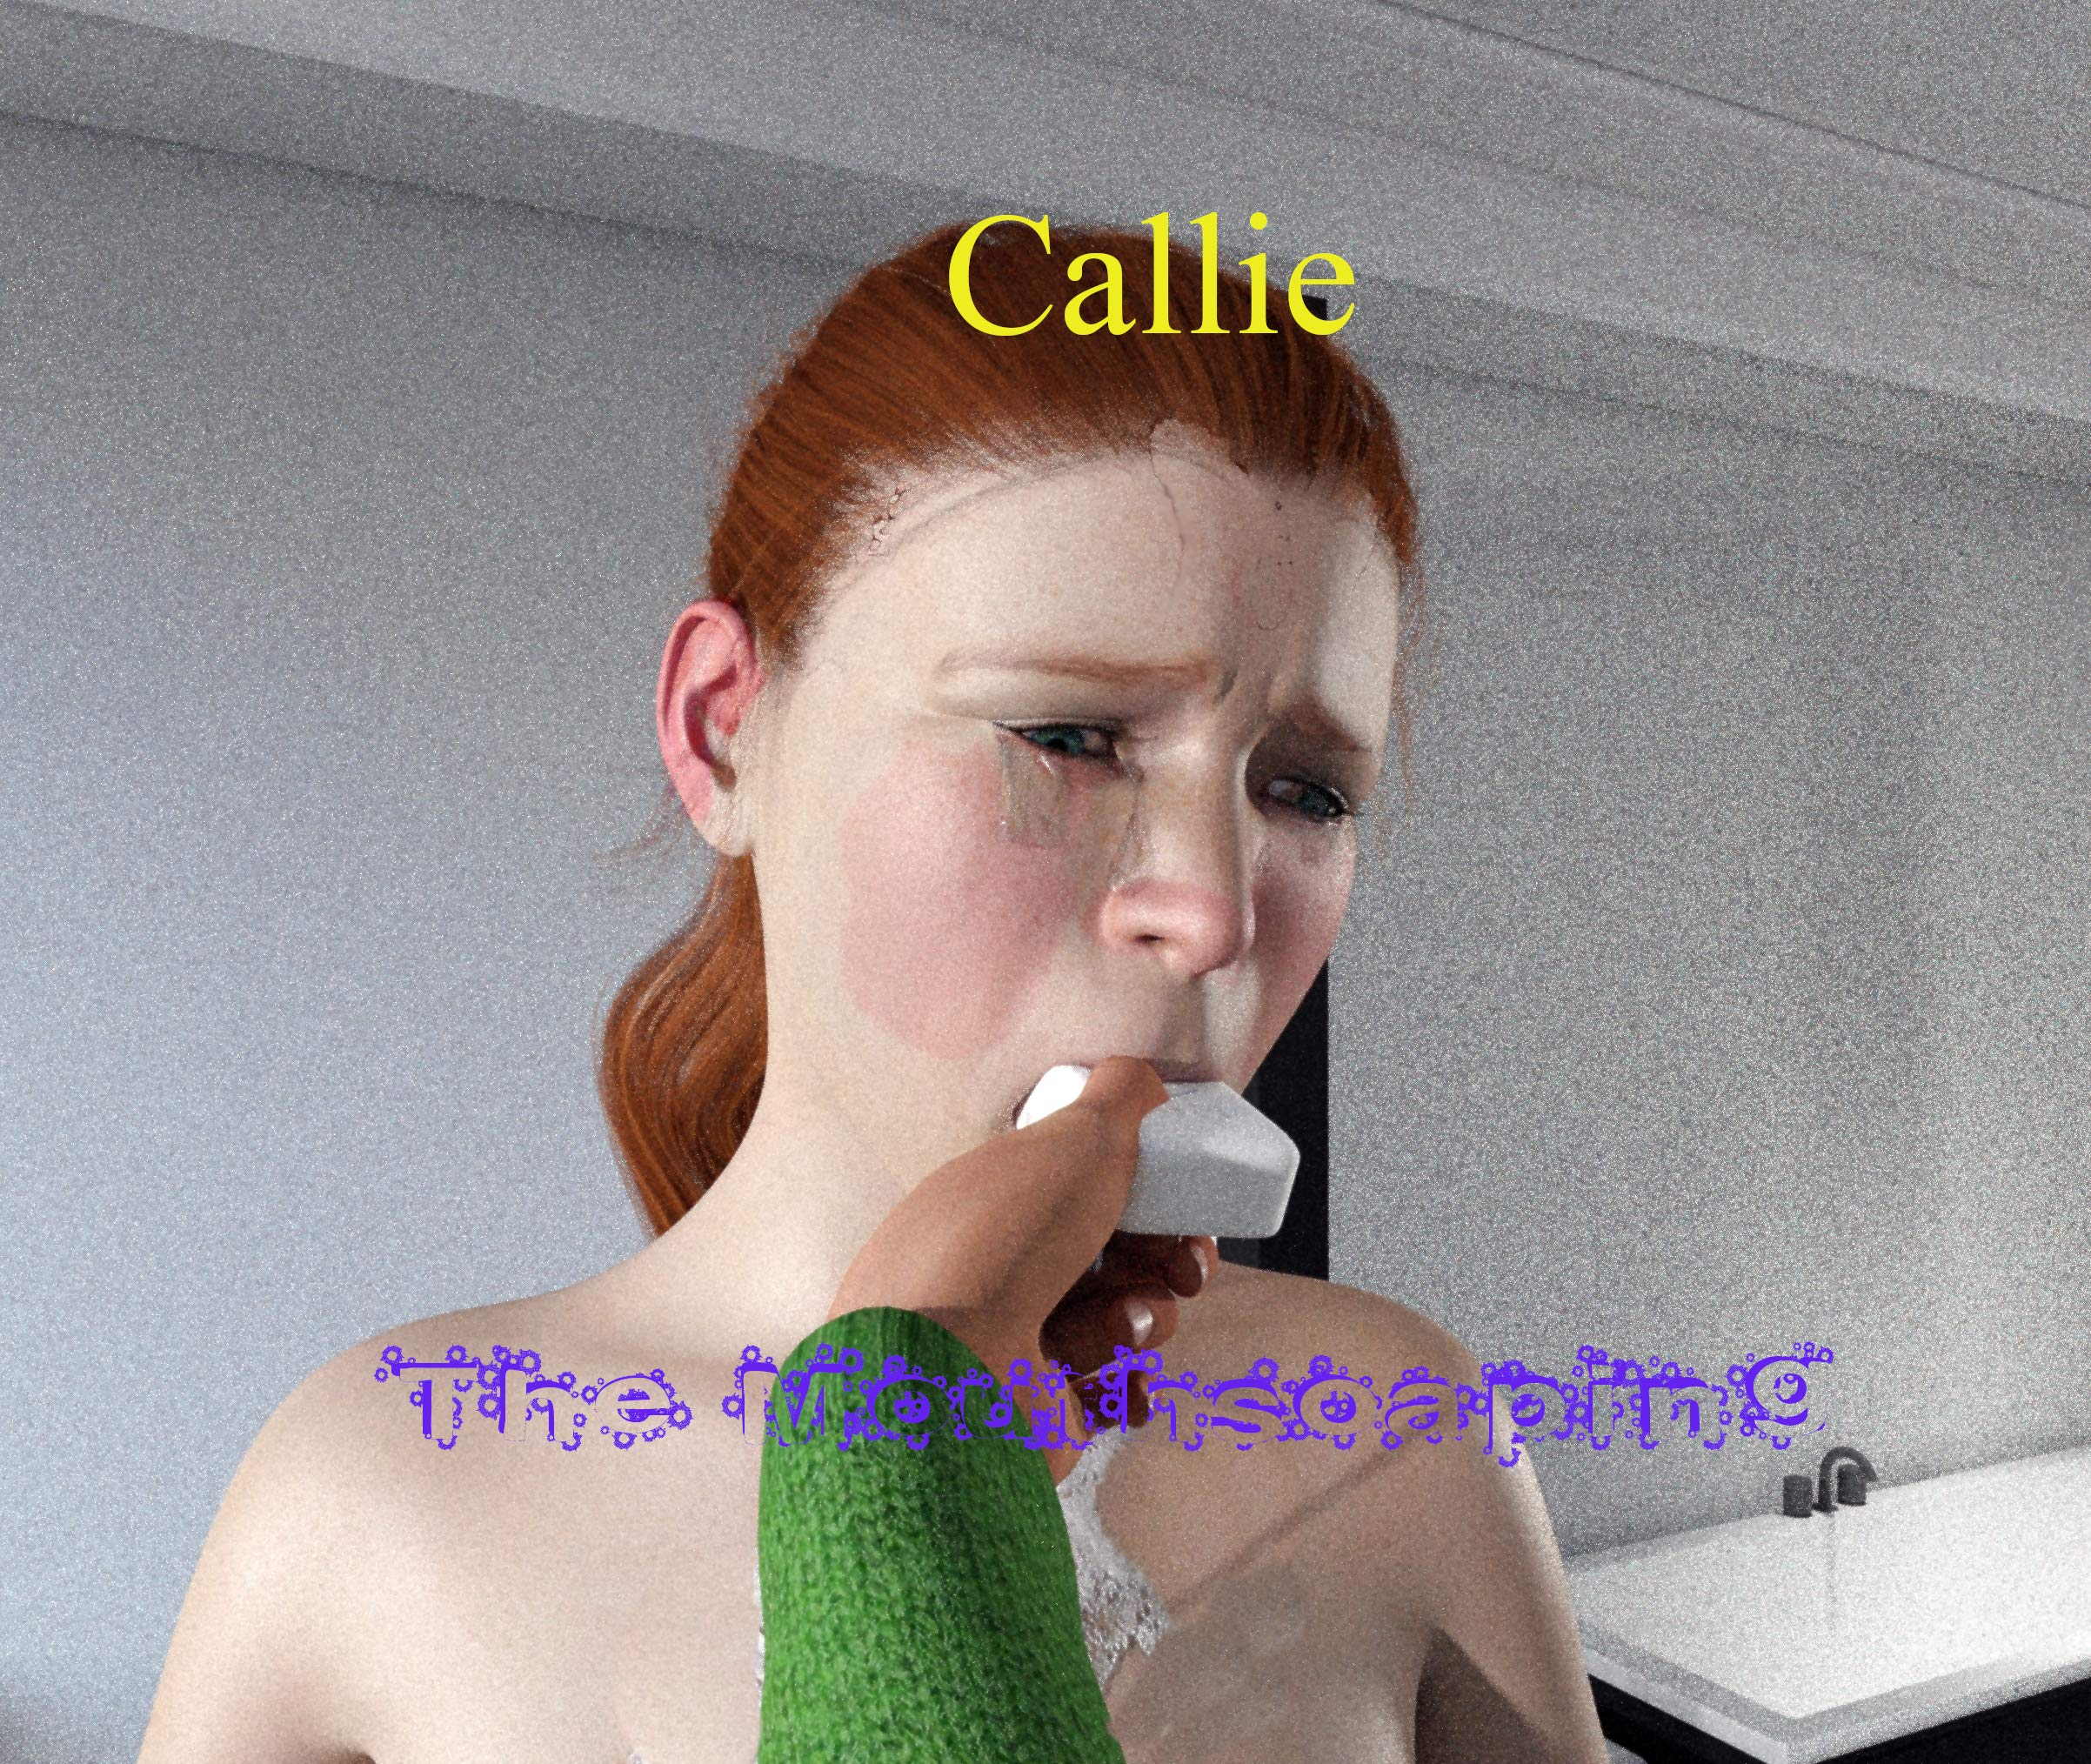 The Misadventures of Callie: The Mouthsoaping